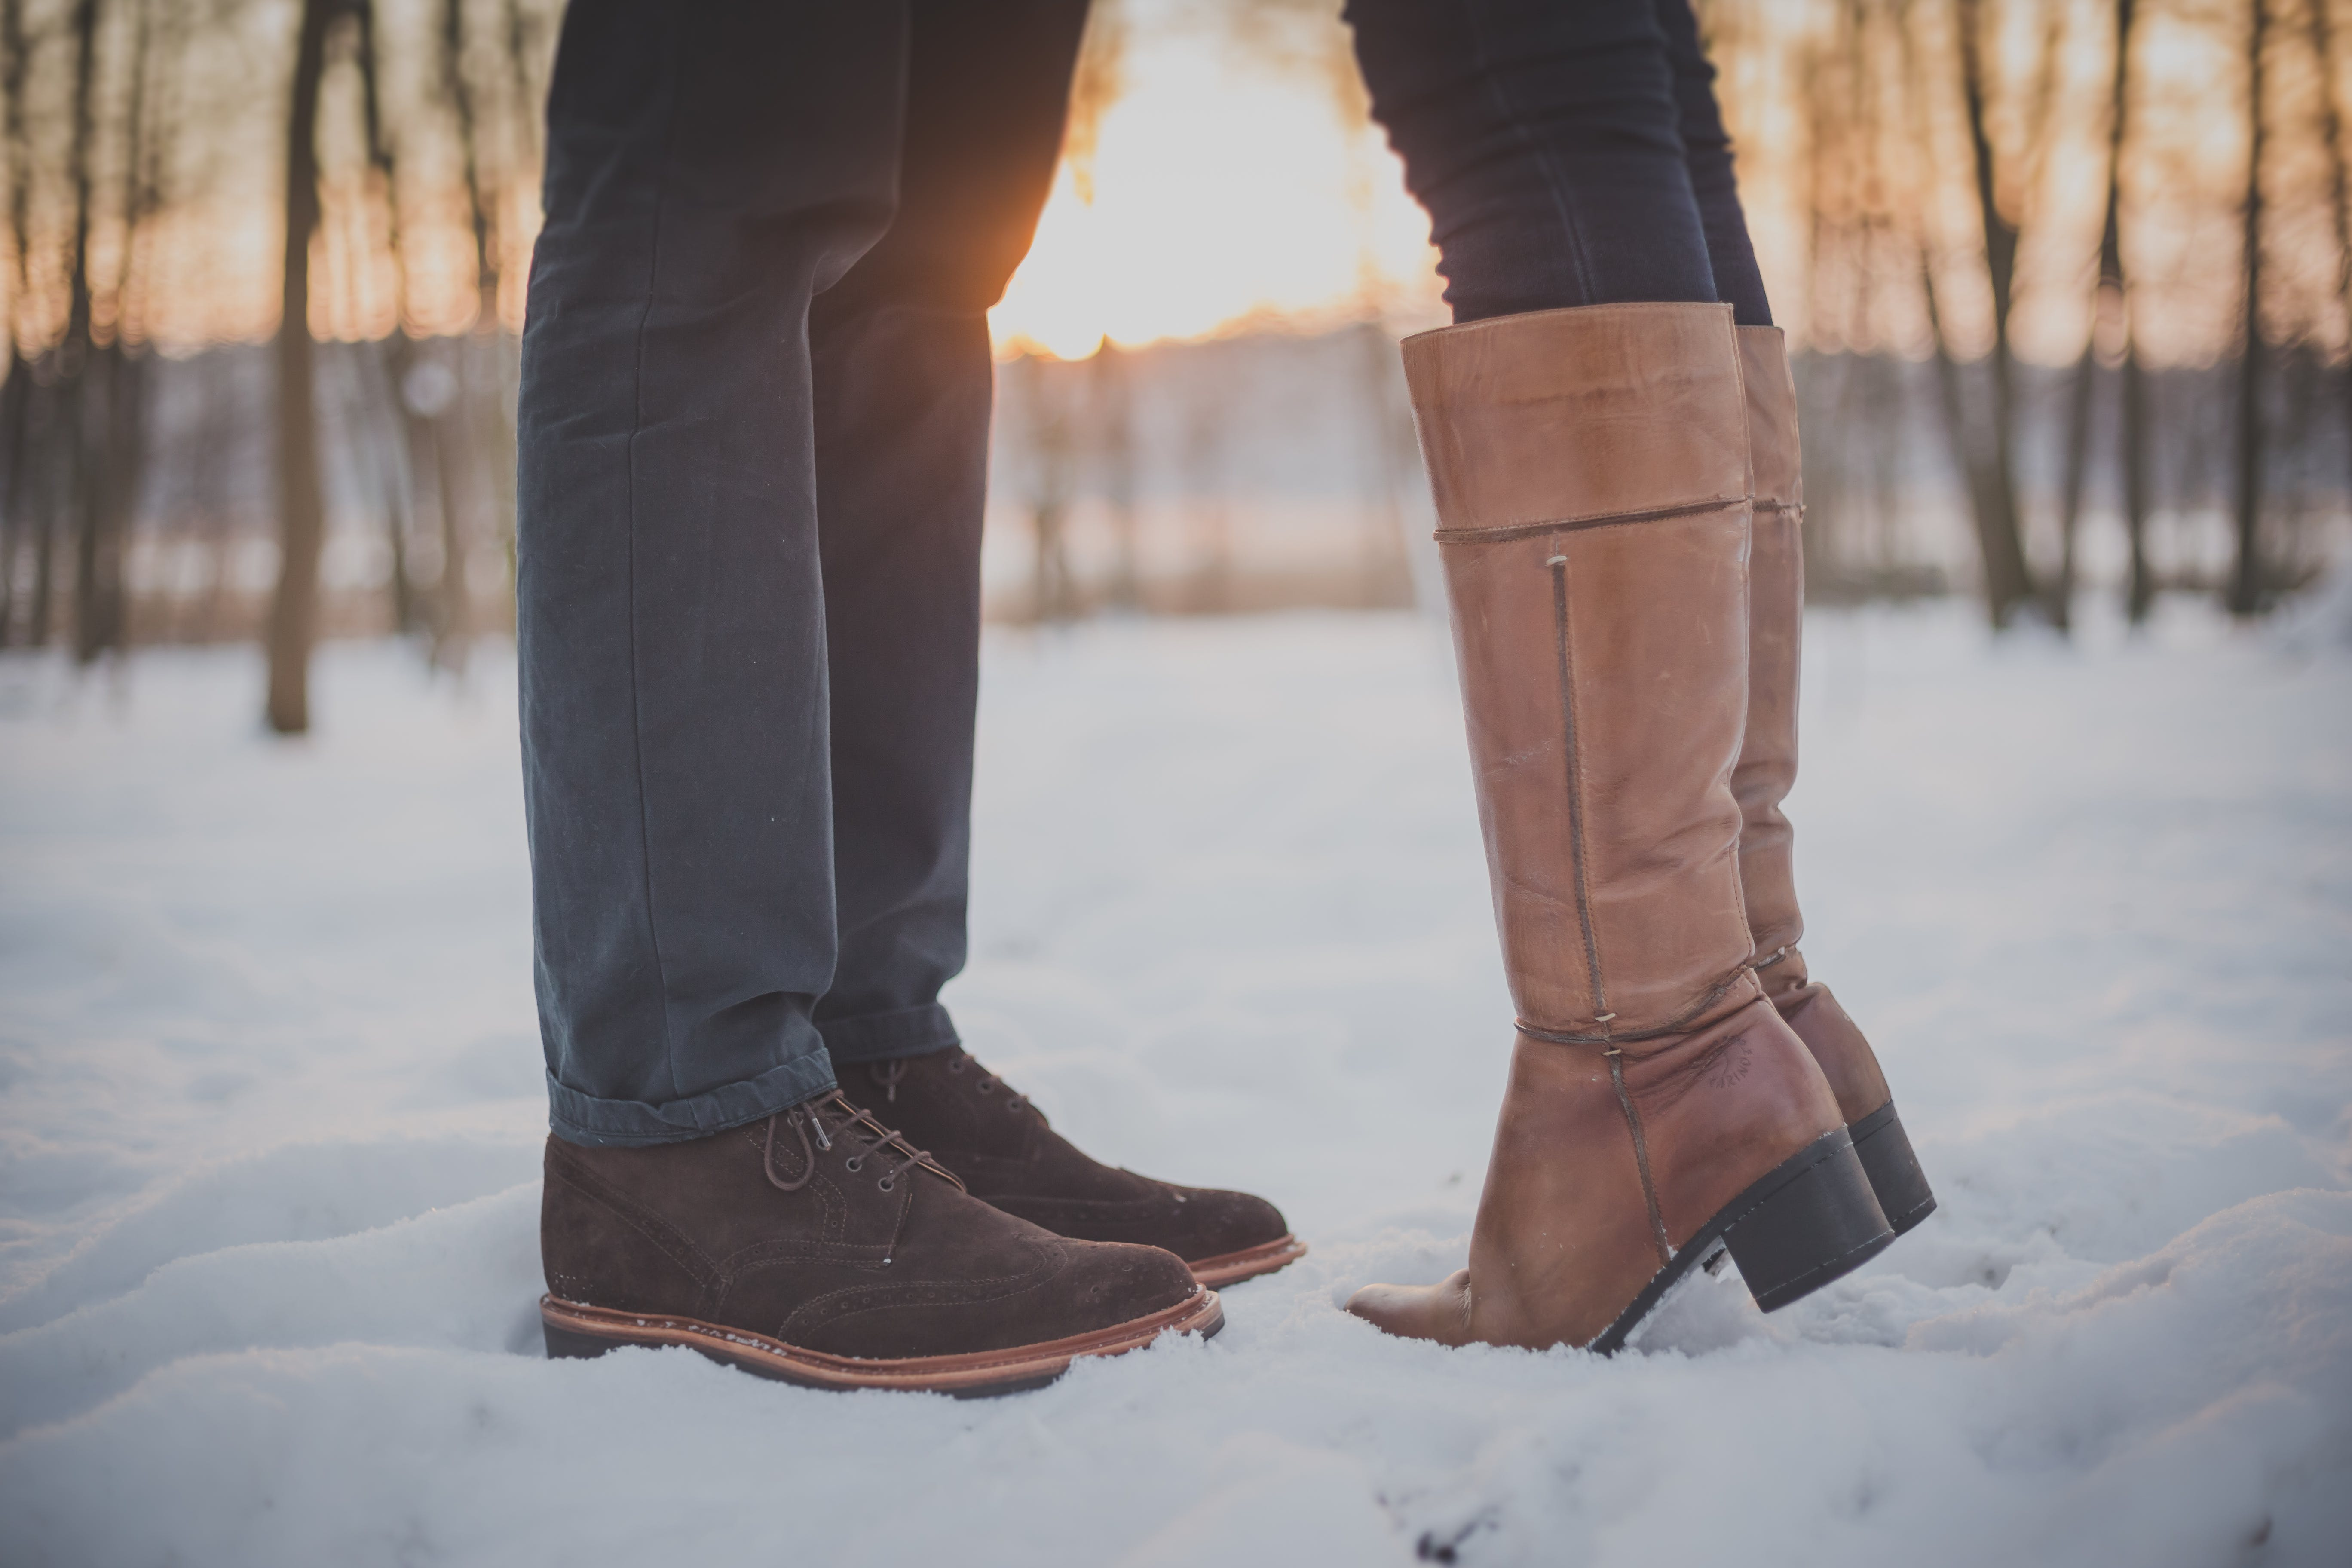 Two People Standing on Snow